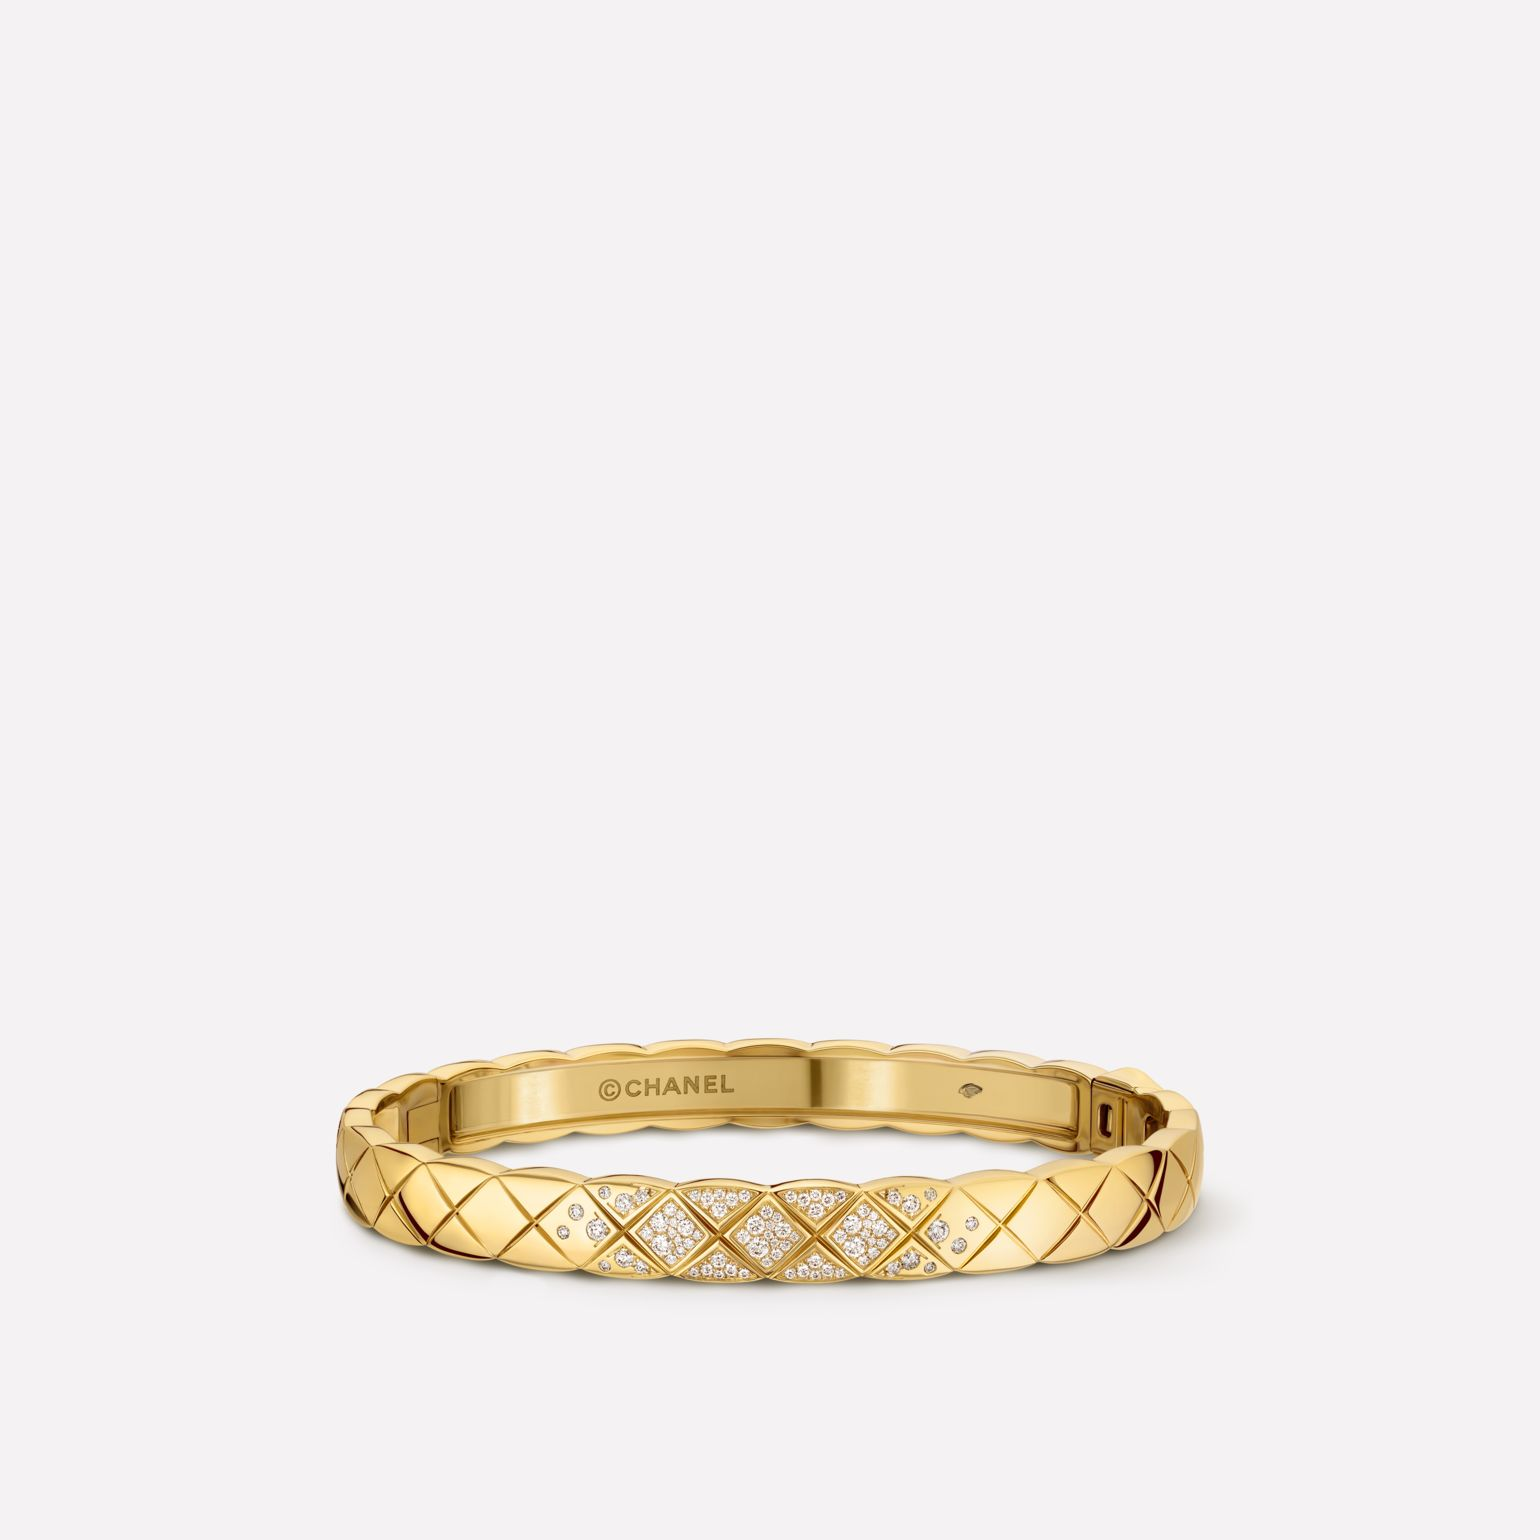 Coco Crush bracelet Quilted motif, 18K yellow gold, diamonds